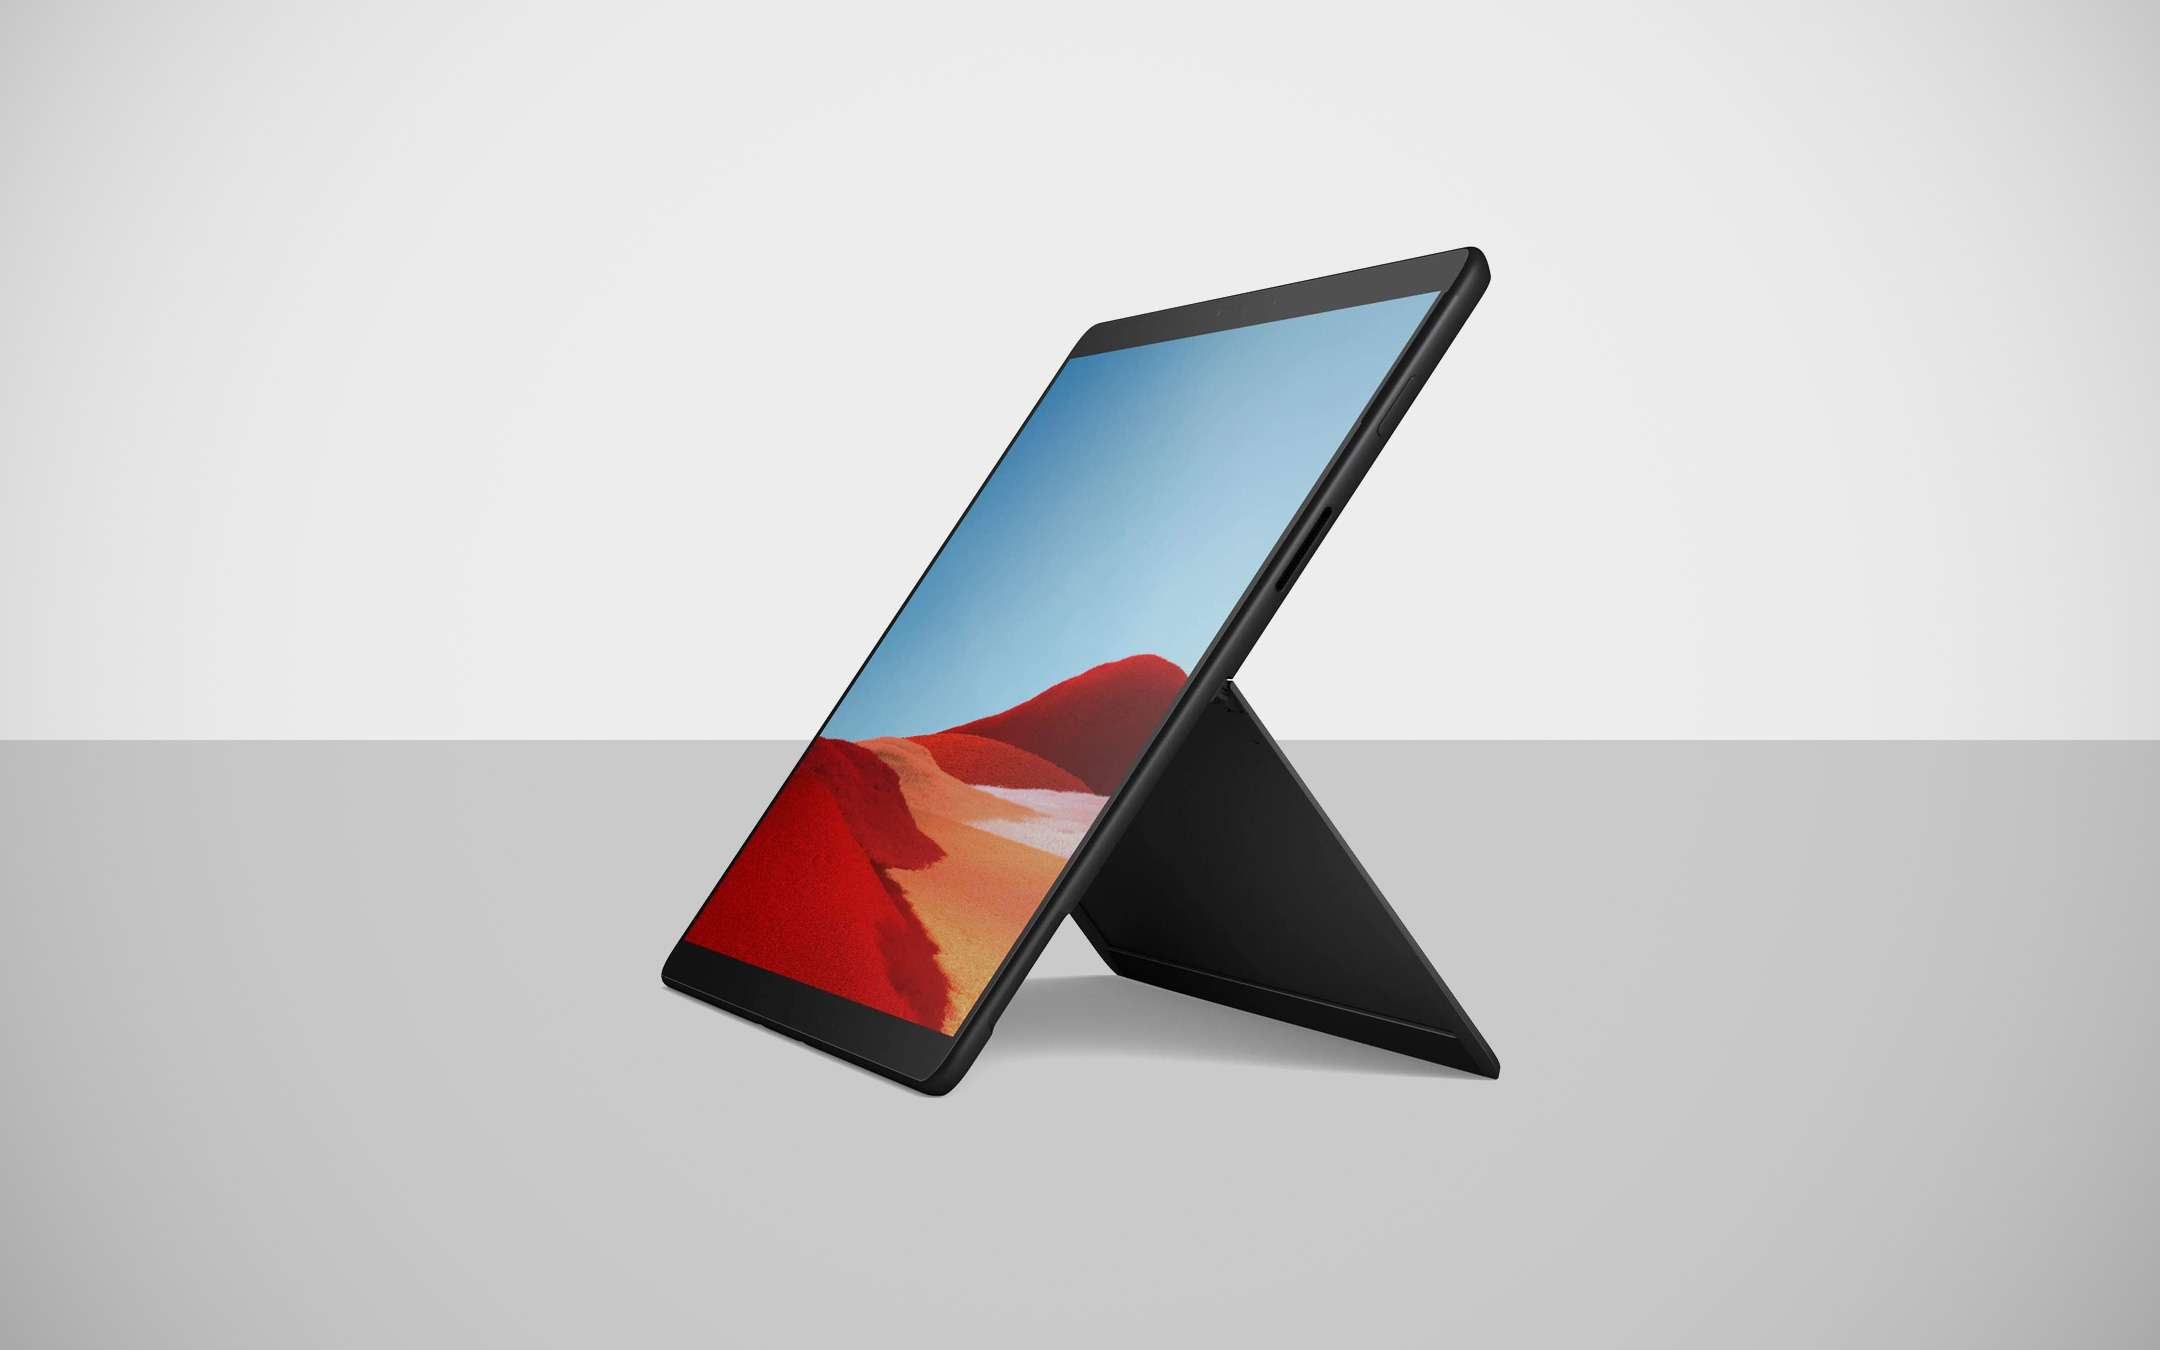 Surface Pro X today at a 27% discount on Amazon